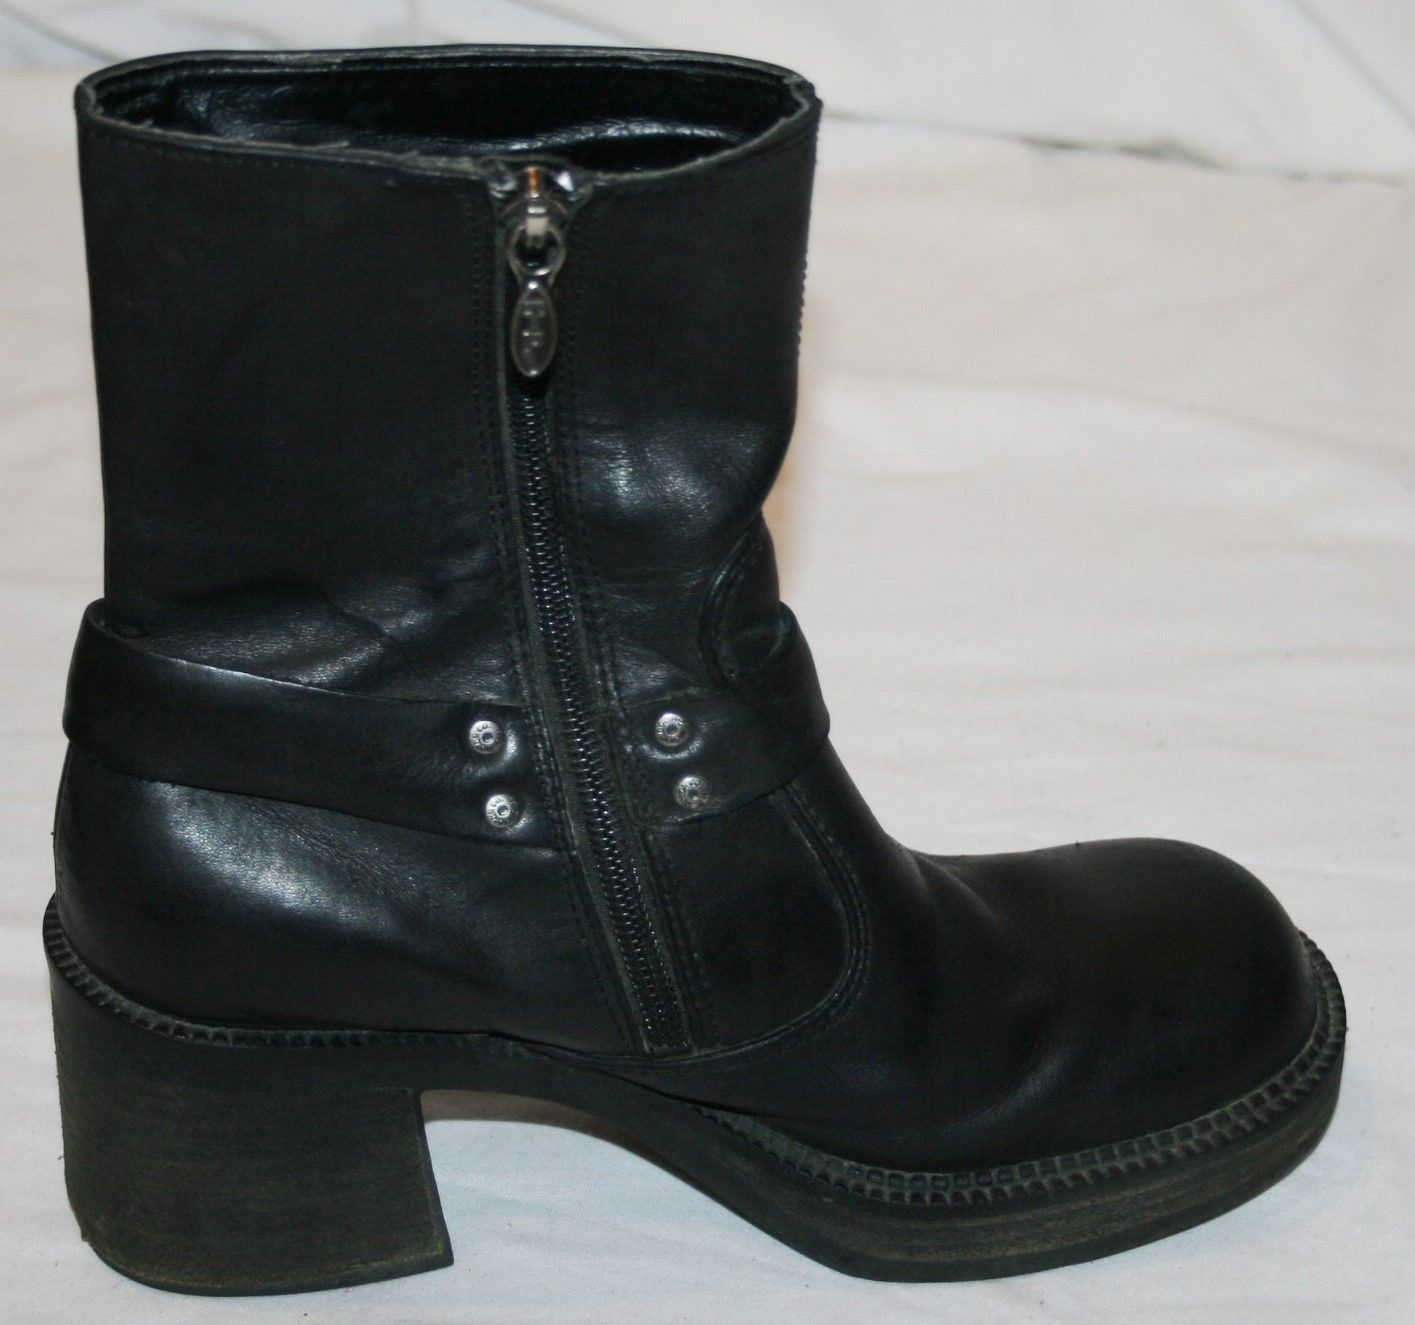 e914d426e5ec Harley Davidson Black Leather Ankle Boots and 34 similar items. 57